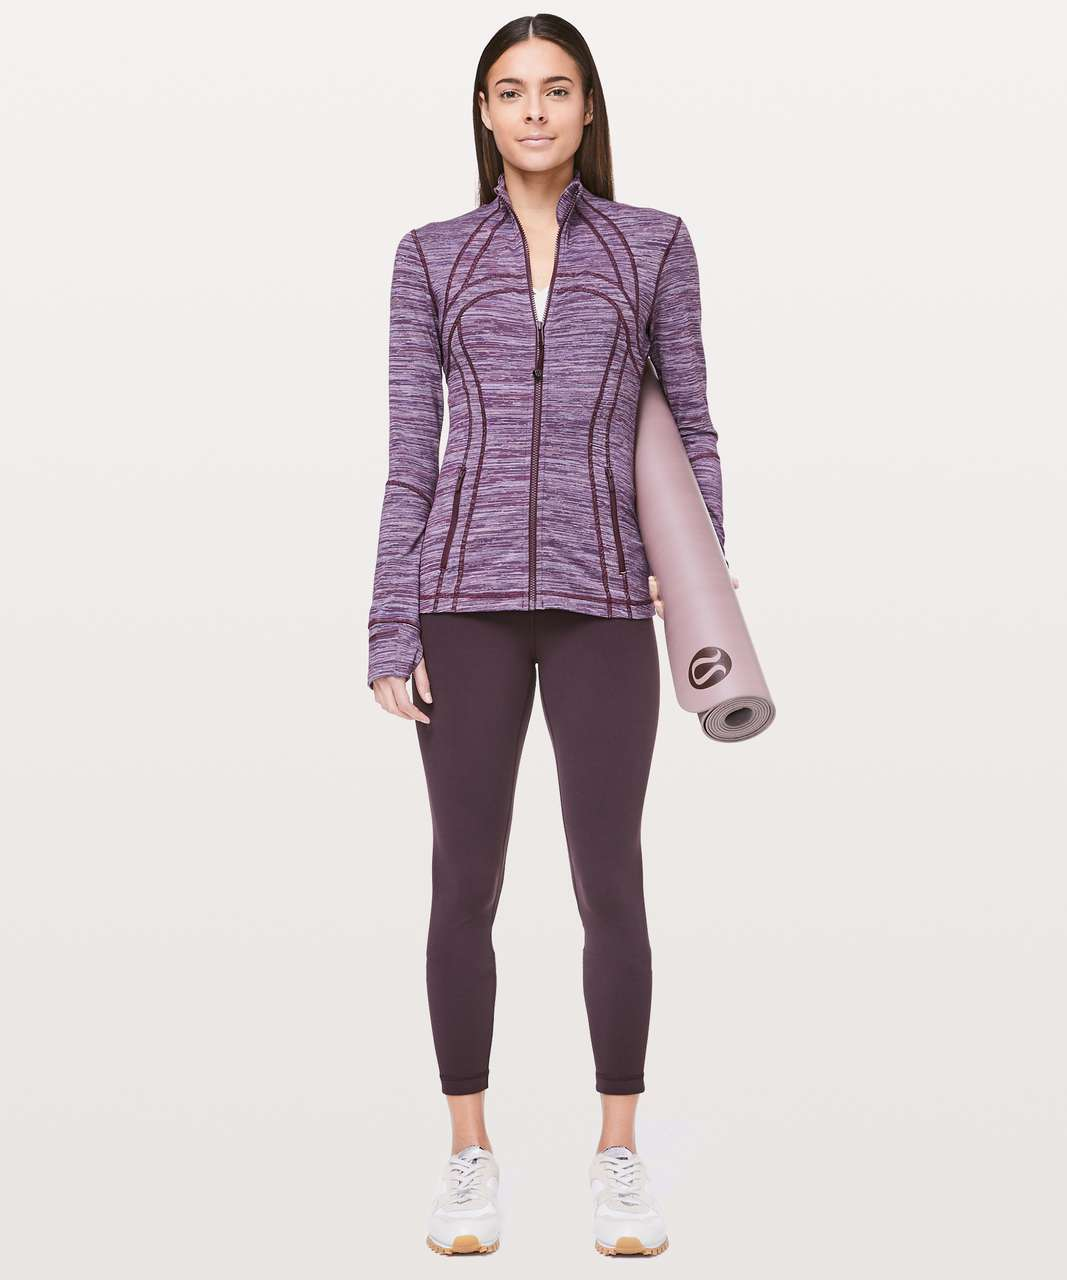 Lululemon Define Jacket - Edged Stripe Jacquard Blueprint Royal Ruby